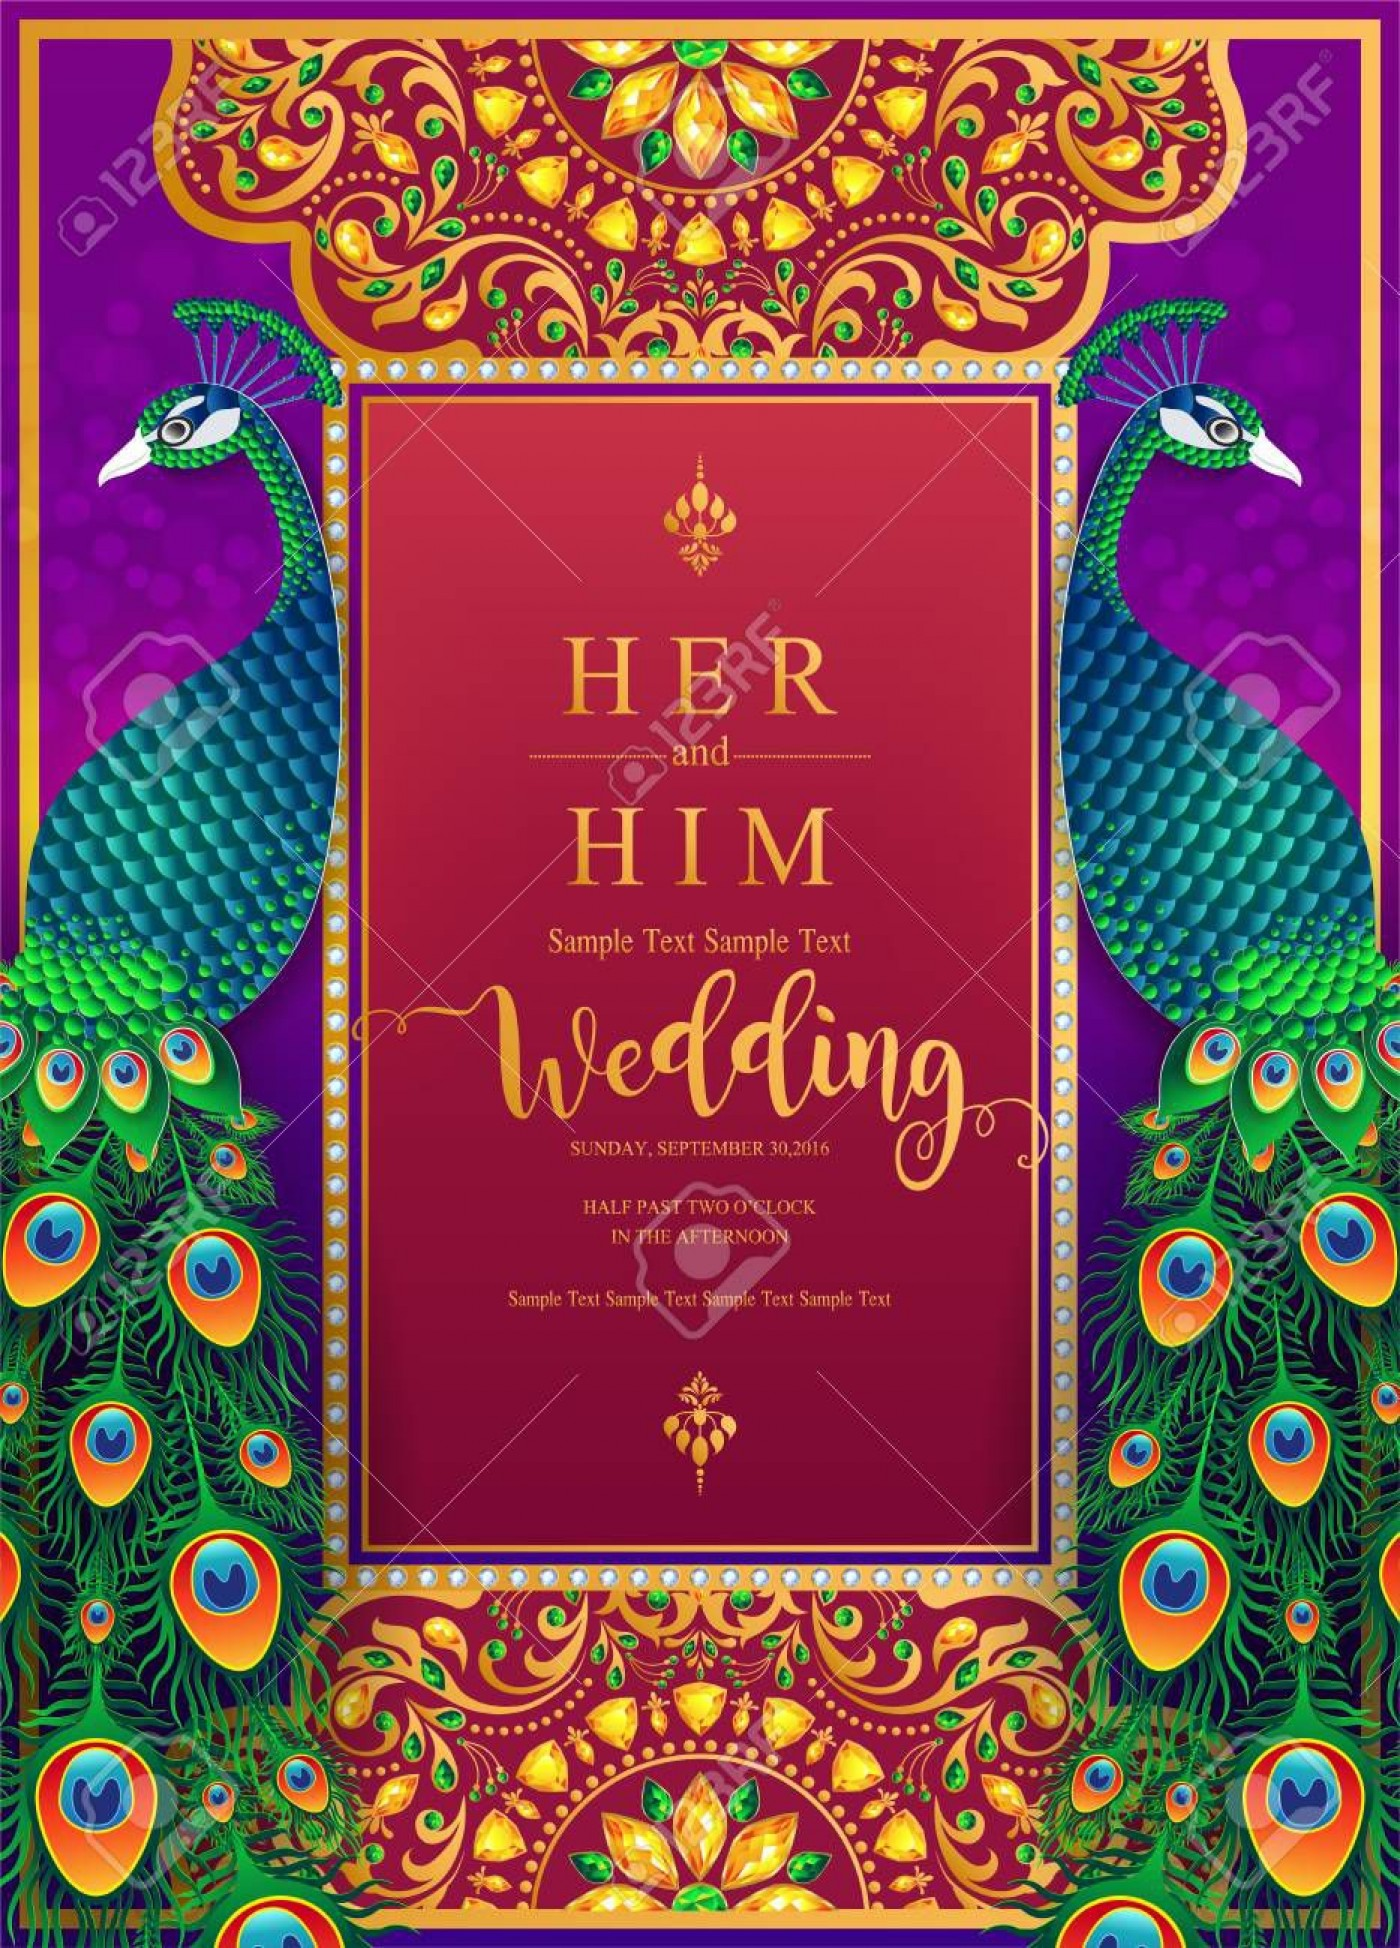 007 Amazing Indian Wedding Invitation Template Picture  Psd Free Download Marriage Online For Friend1400